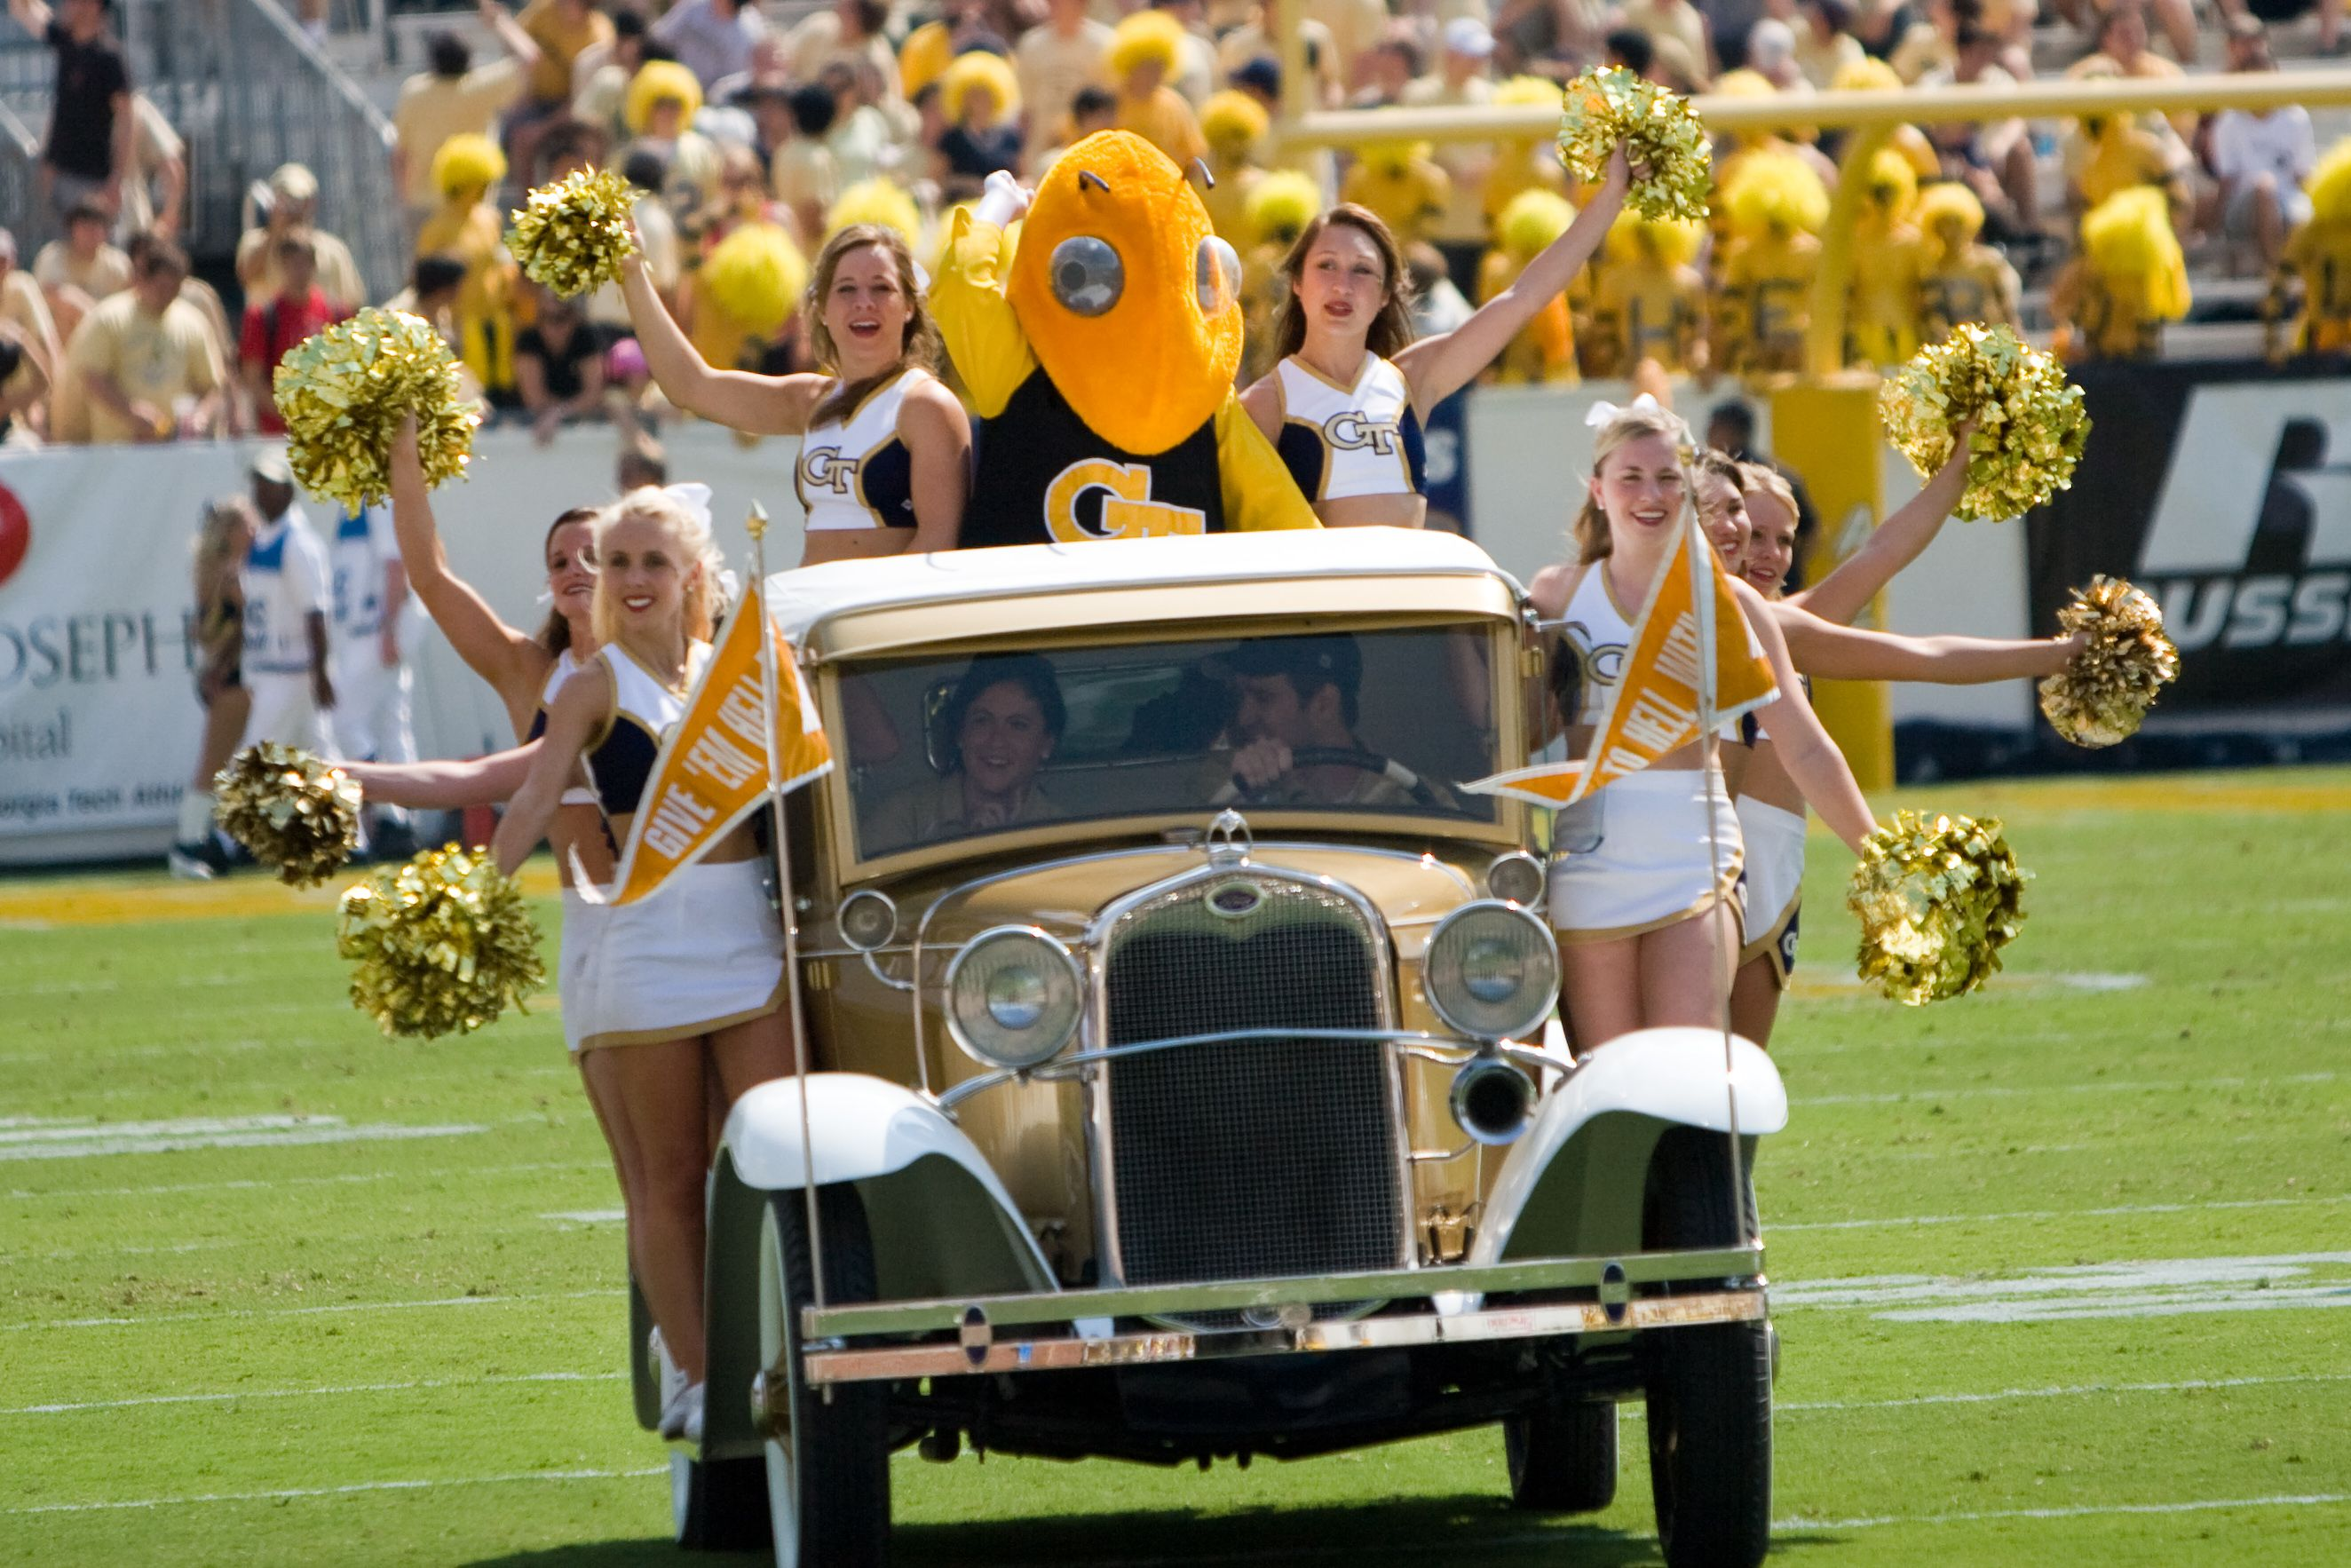 Gt Cheerleaders Buzz Georgia Tech Yellow Jackets Football